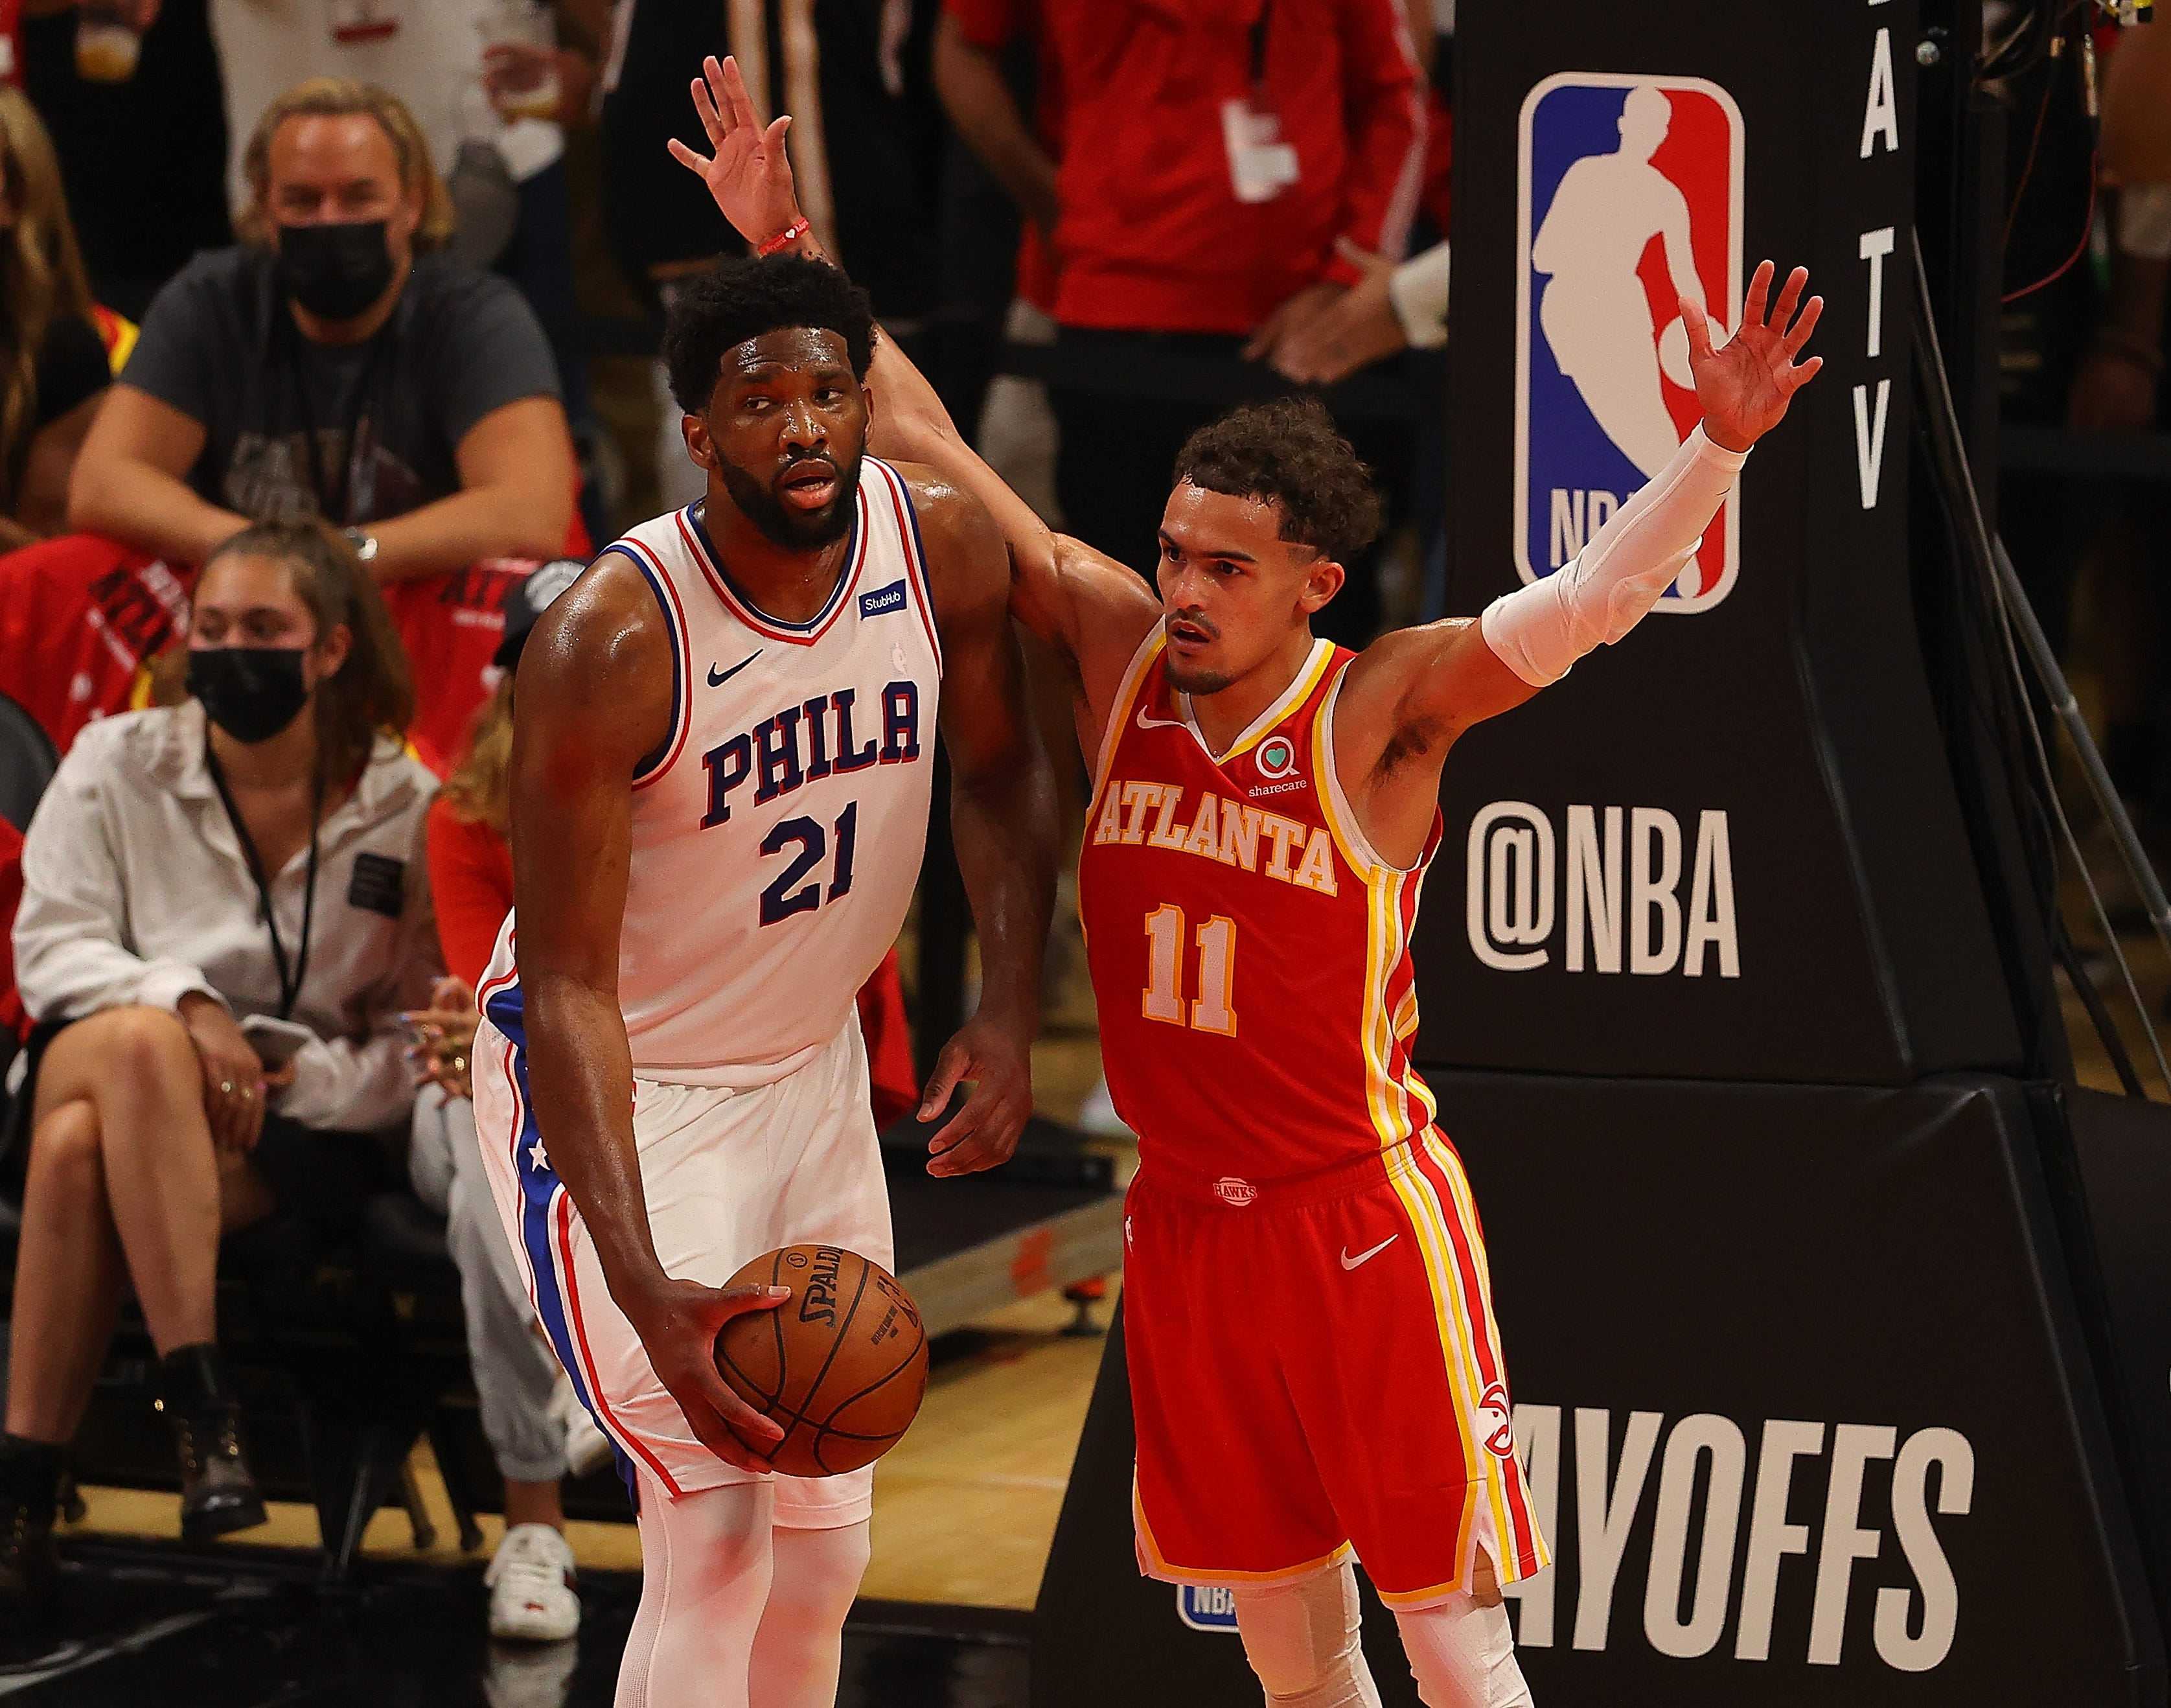 Opinion: Sixers' win in Game 3 exposes gap young Hawks still have to close